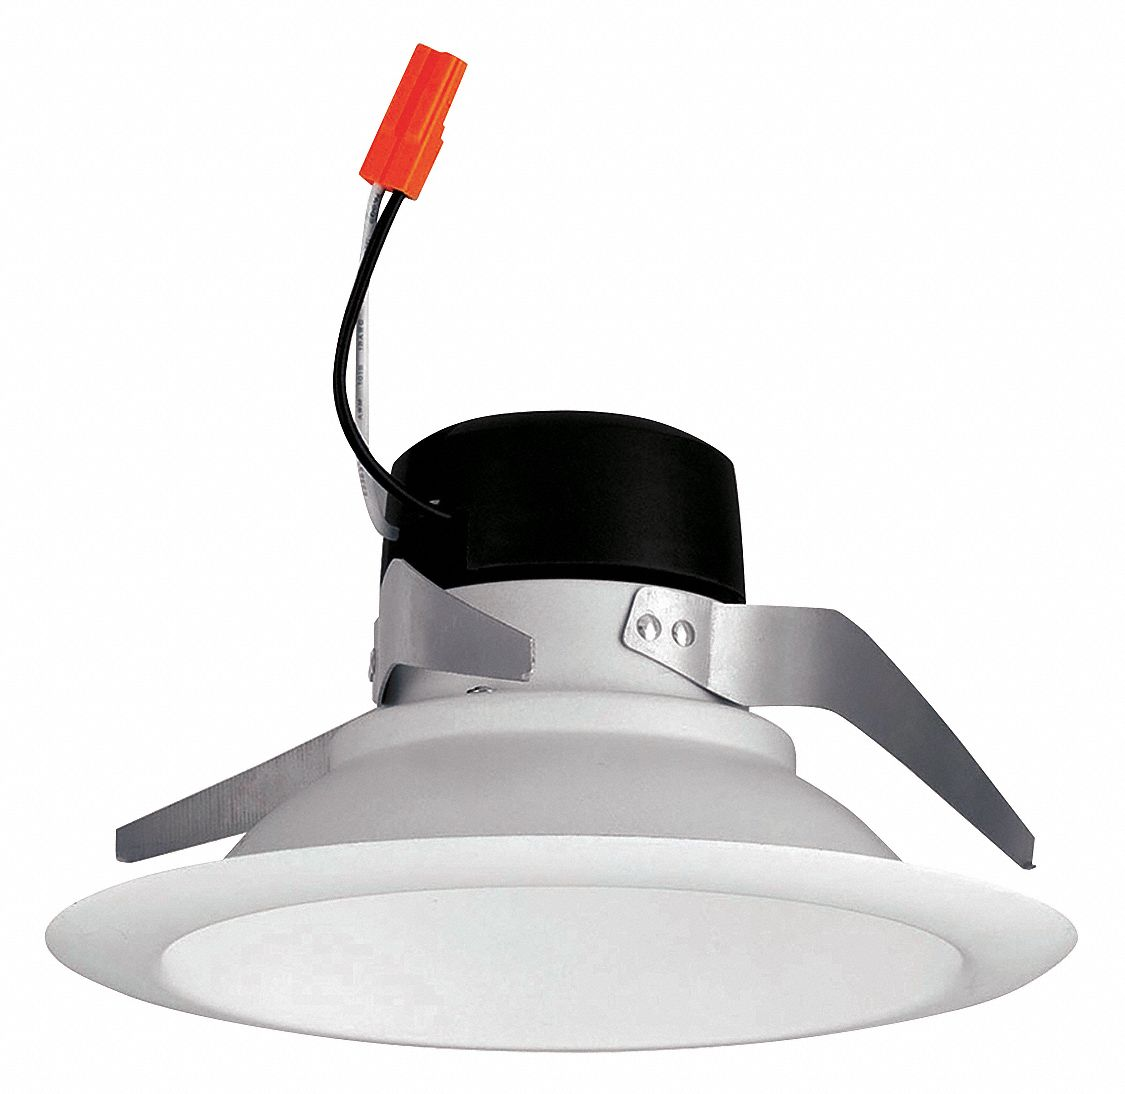 Hubbell Lighting Prescolite 7 Dimmable Led Downlight Retrofit